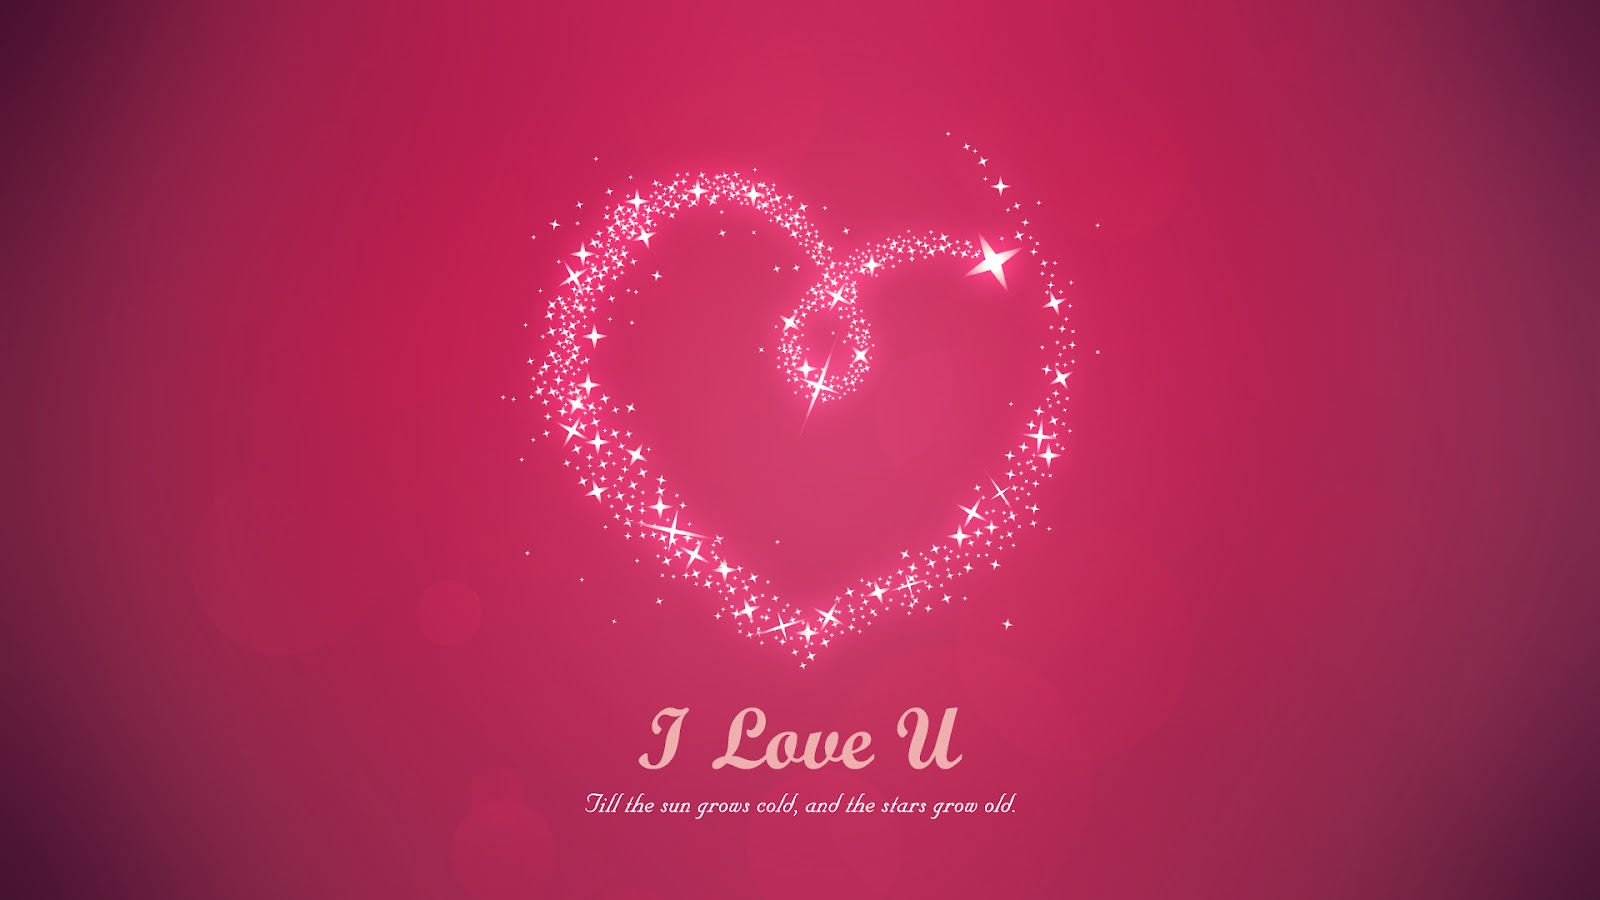 Love Wallpaper In Relationship : i love u wallpapers love wallpapers love quotes wallpapers sad love wallpapers sad ...